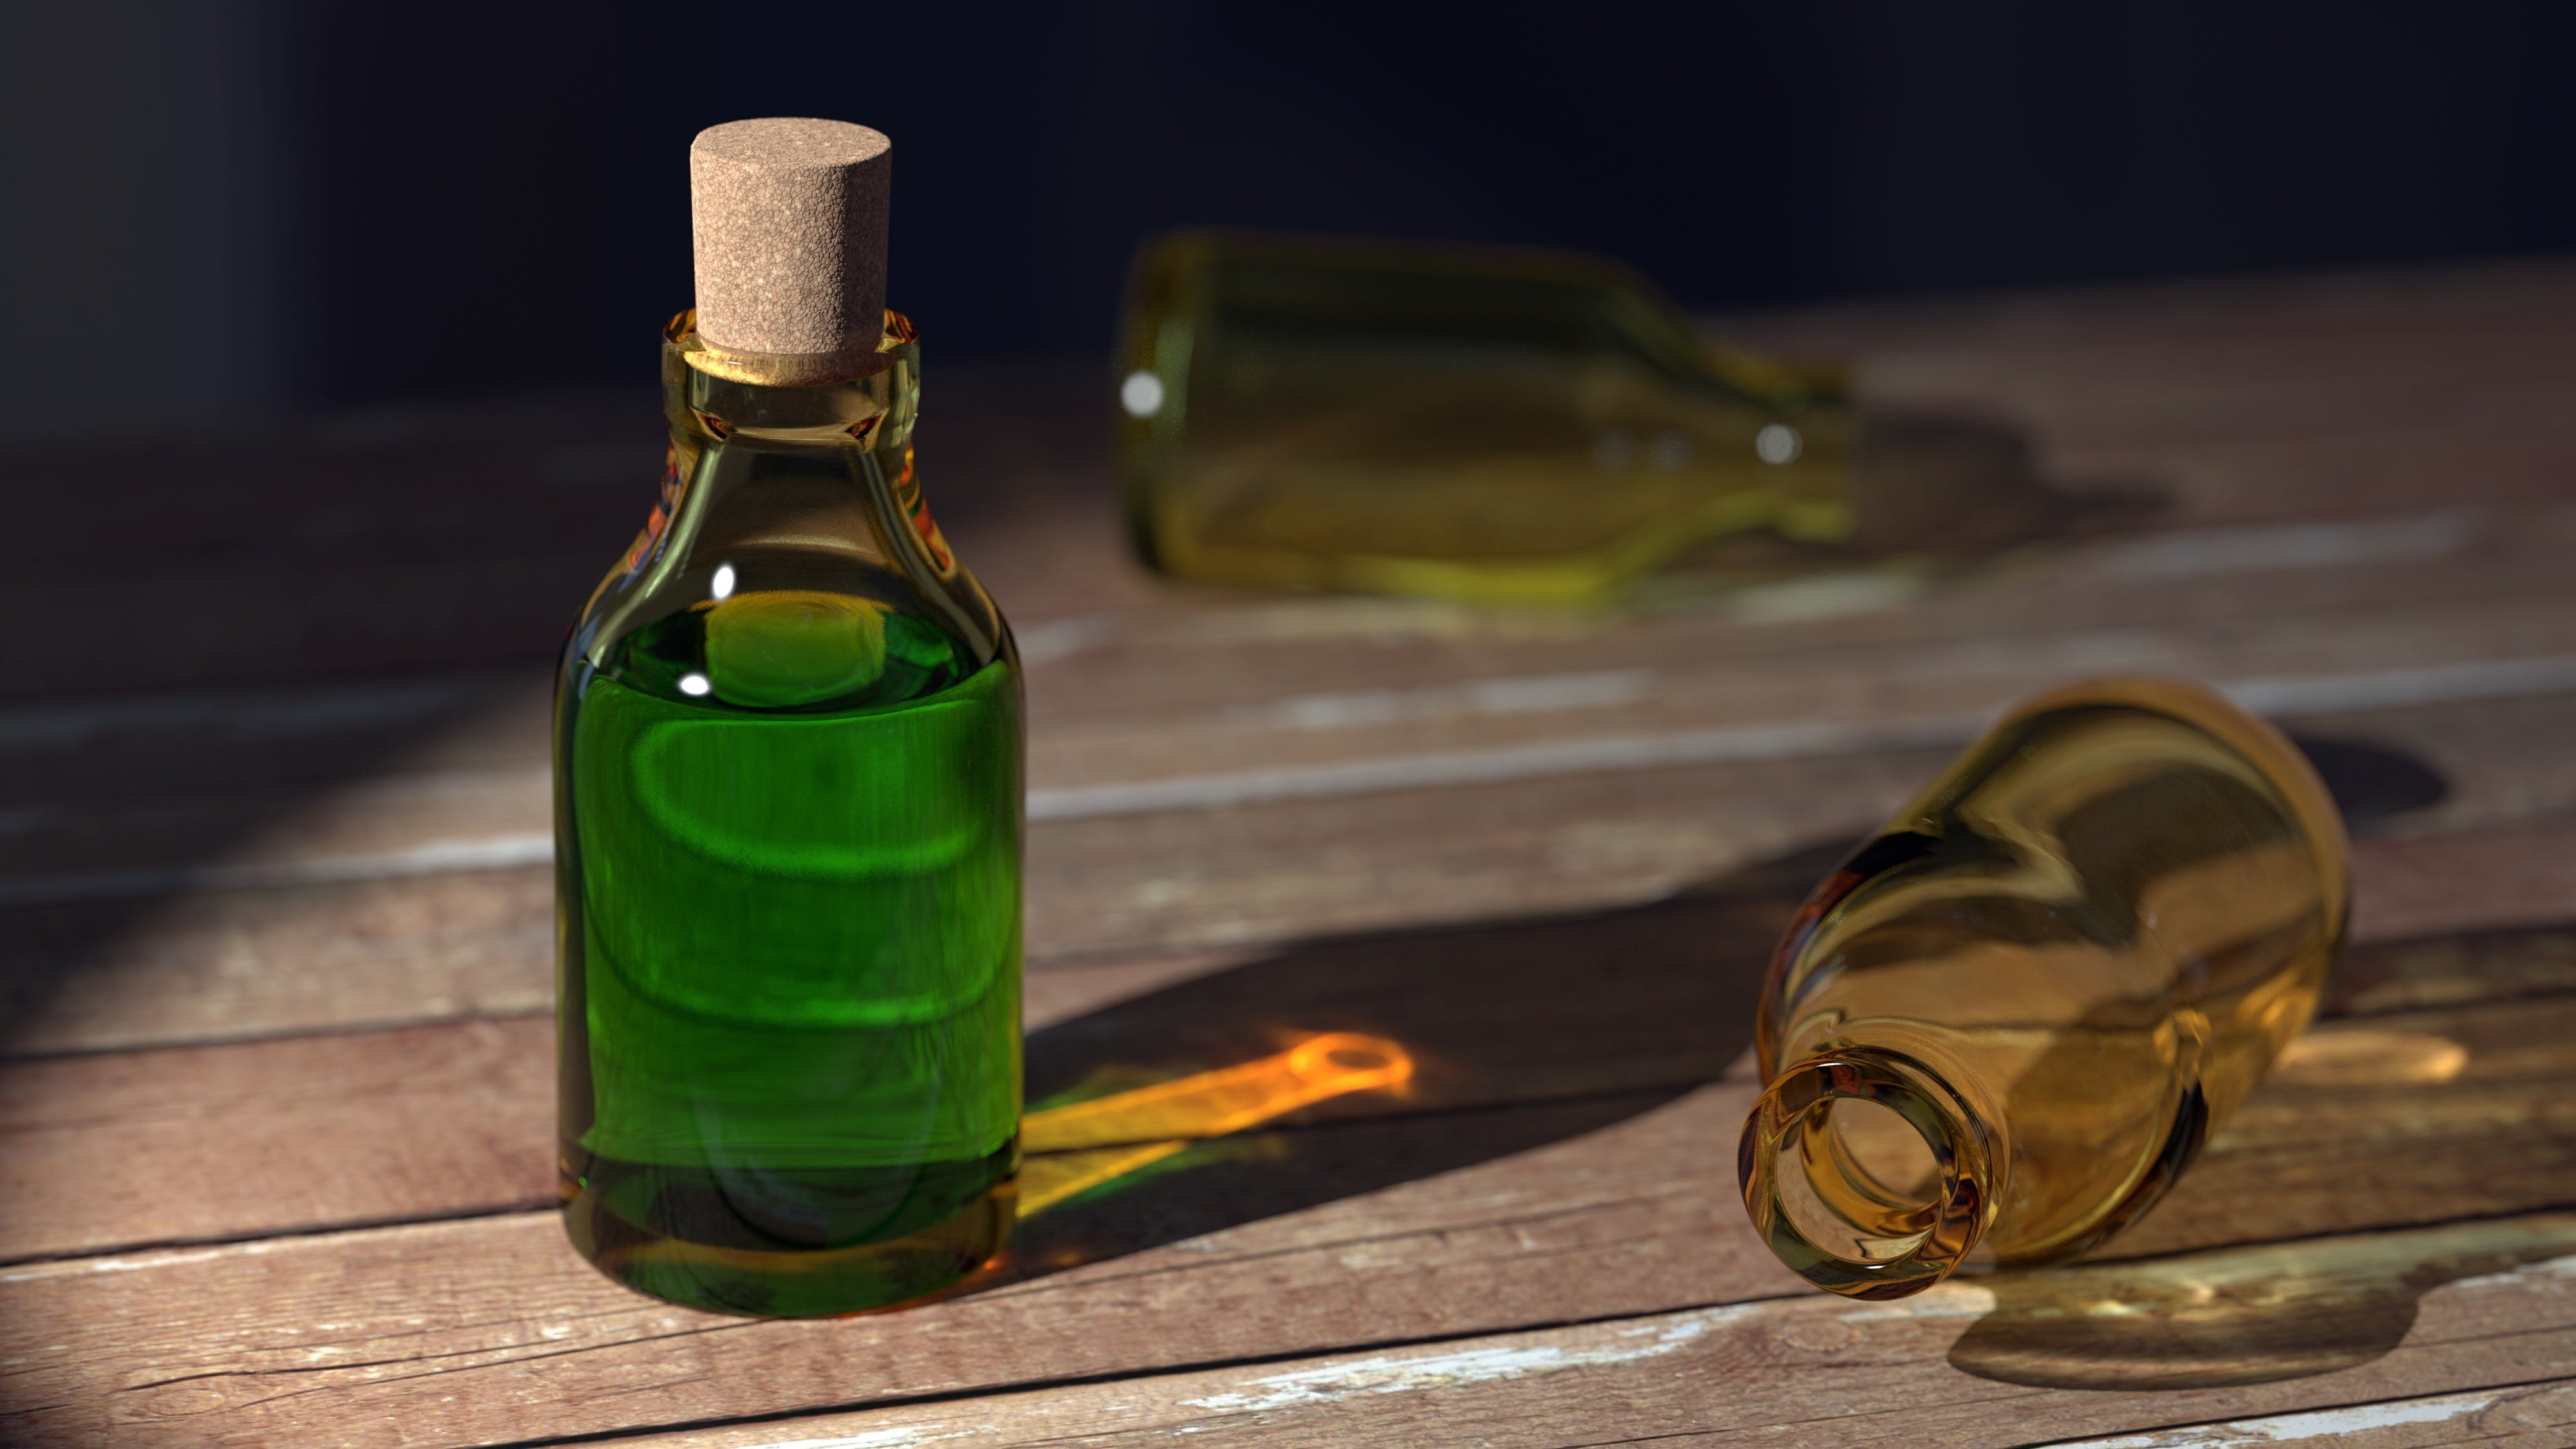 Green Liquid on Clear Glass Bottle With Cork